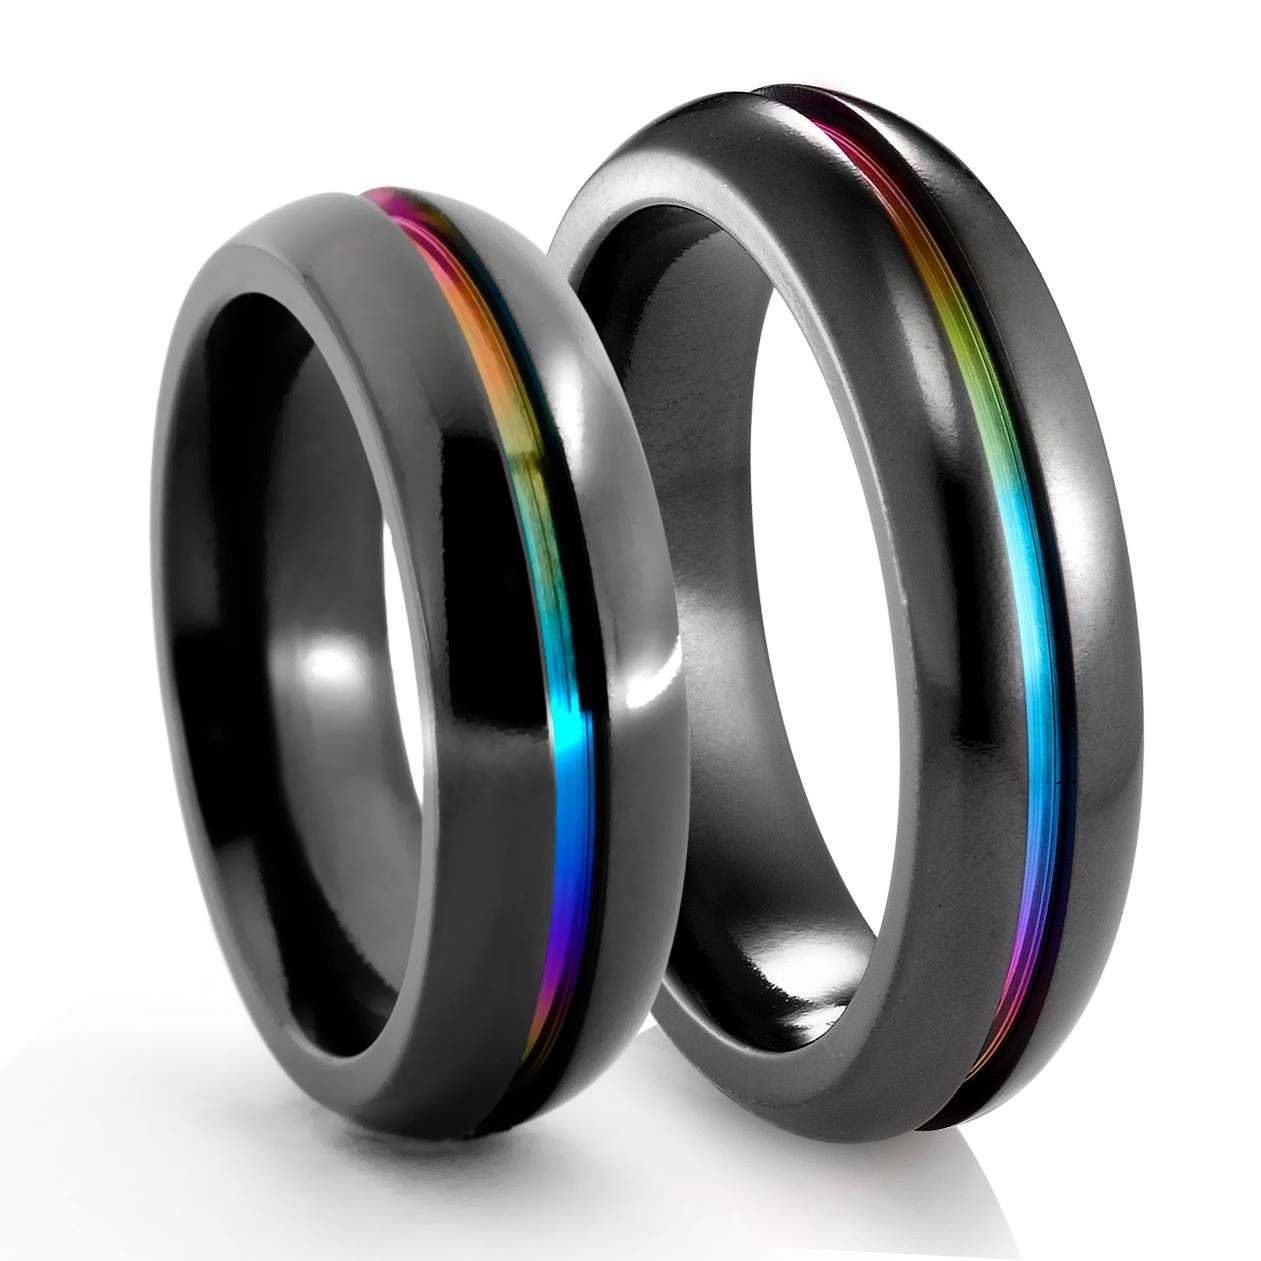 wedding homosexual jewelry pride men gold lgbt gay rings women and bisexual vintage for steel product same rainbow stainless lesbian sexuality ring